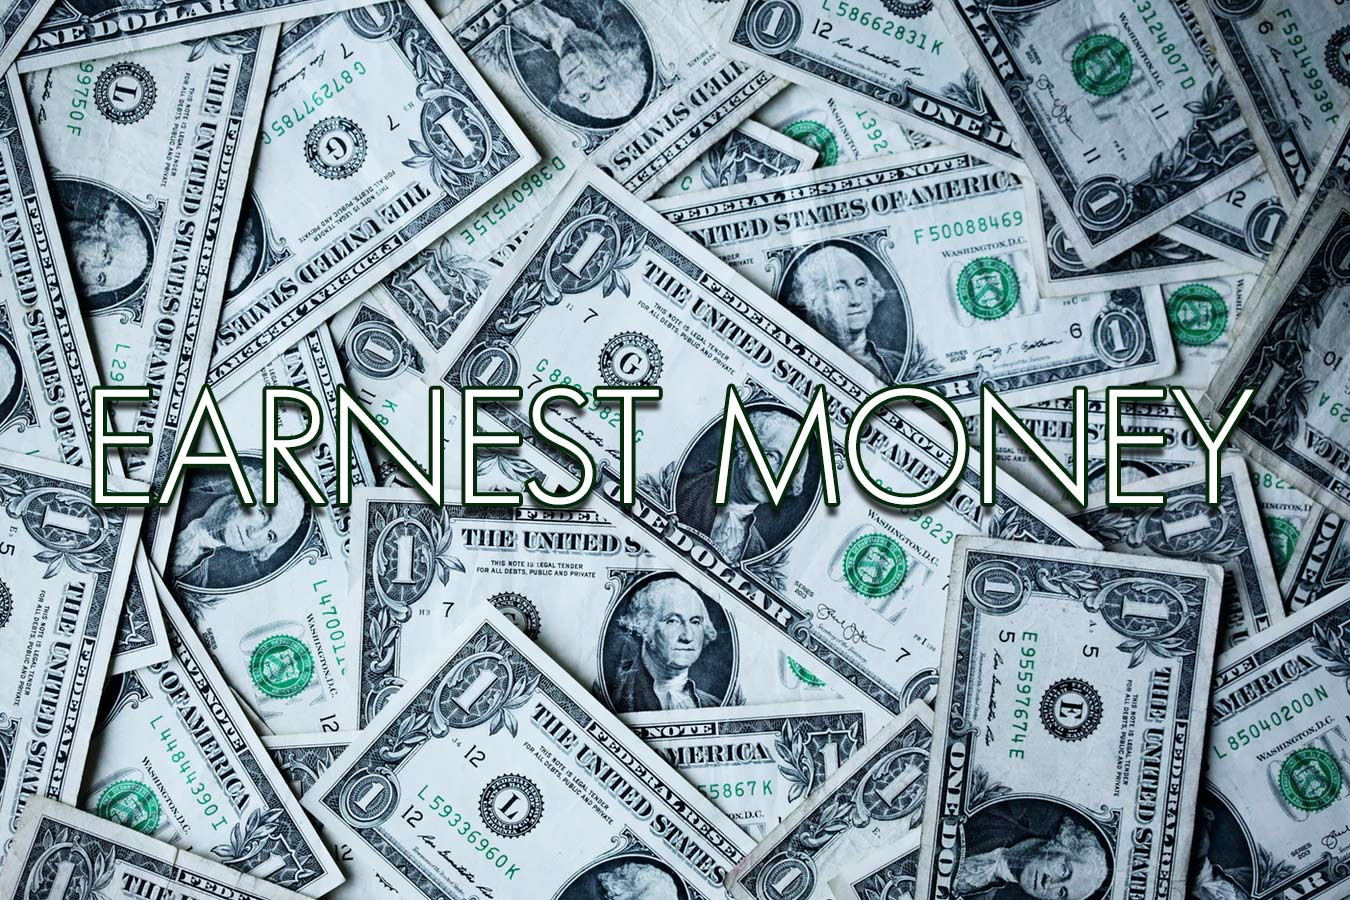 What is earnest money?